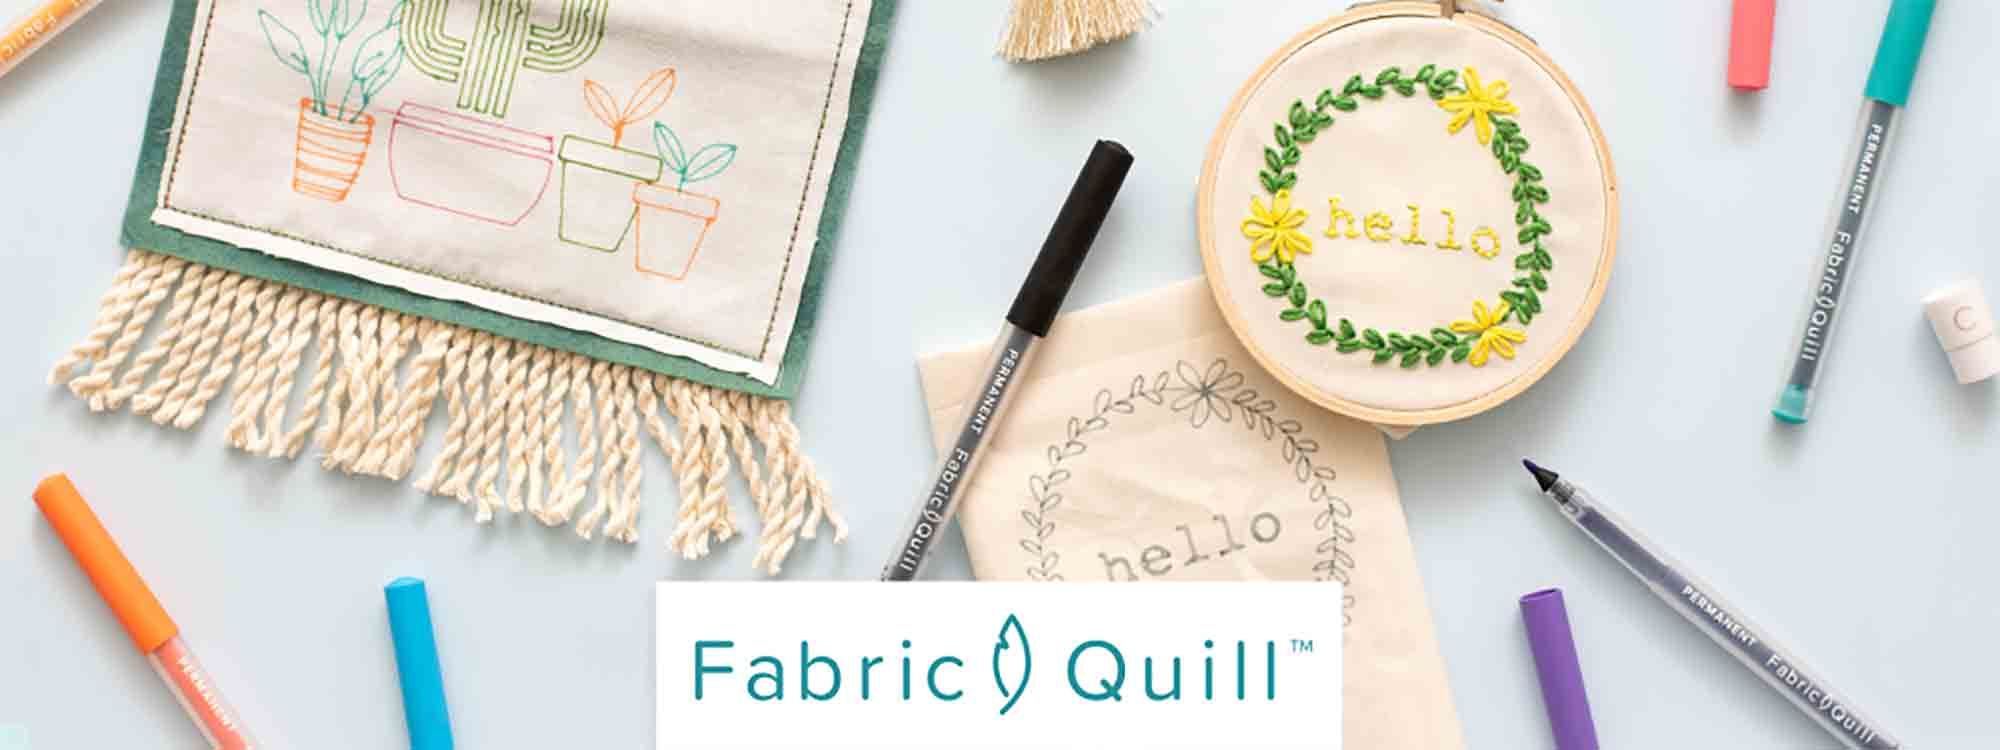 WR_Quill_Fabric_WebsiteHeader-2000x750